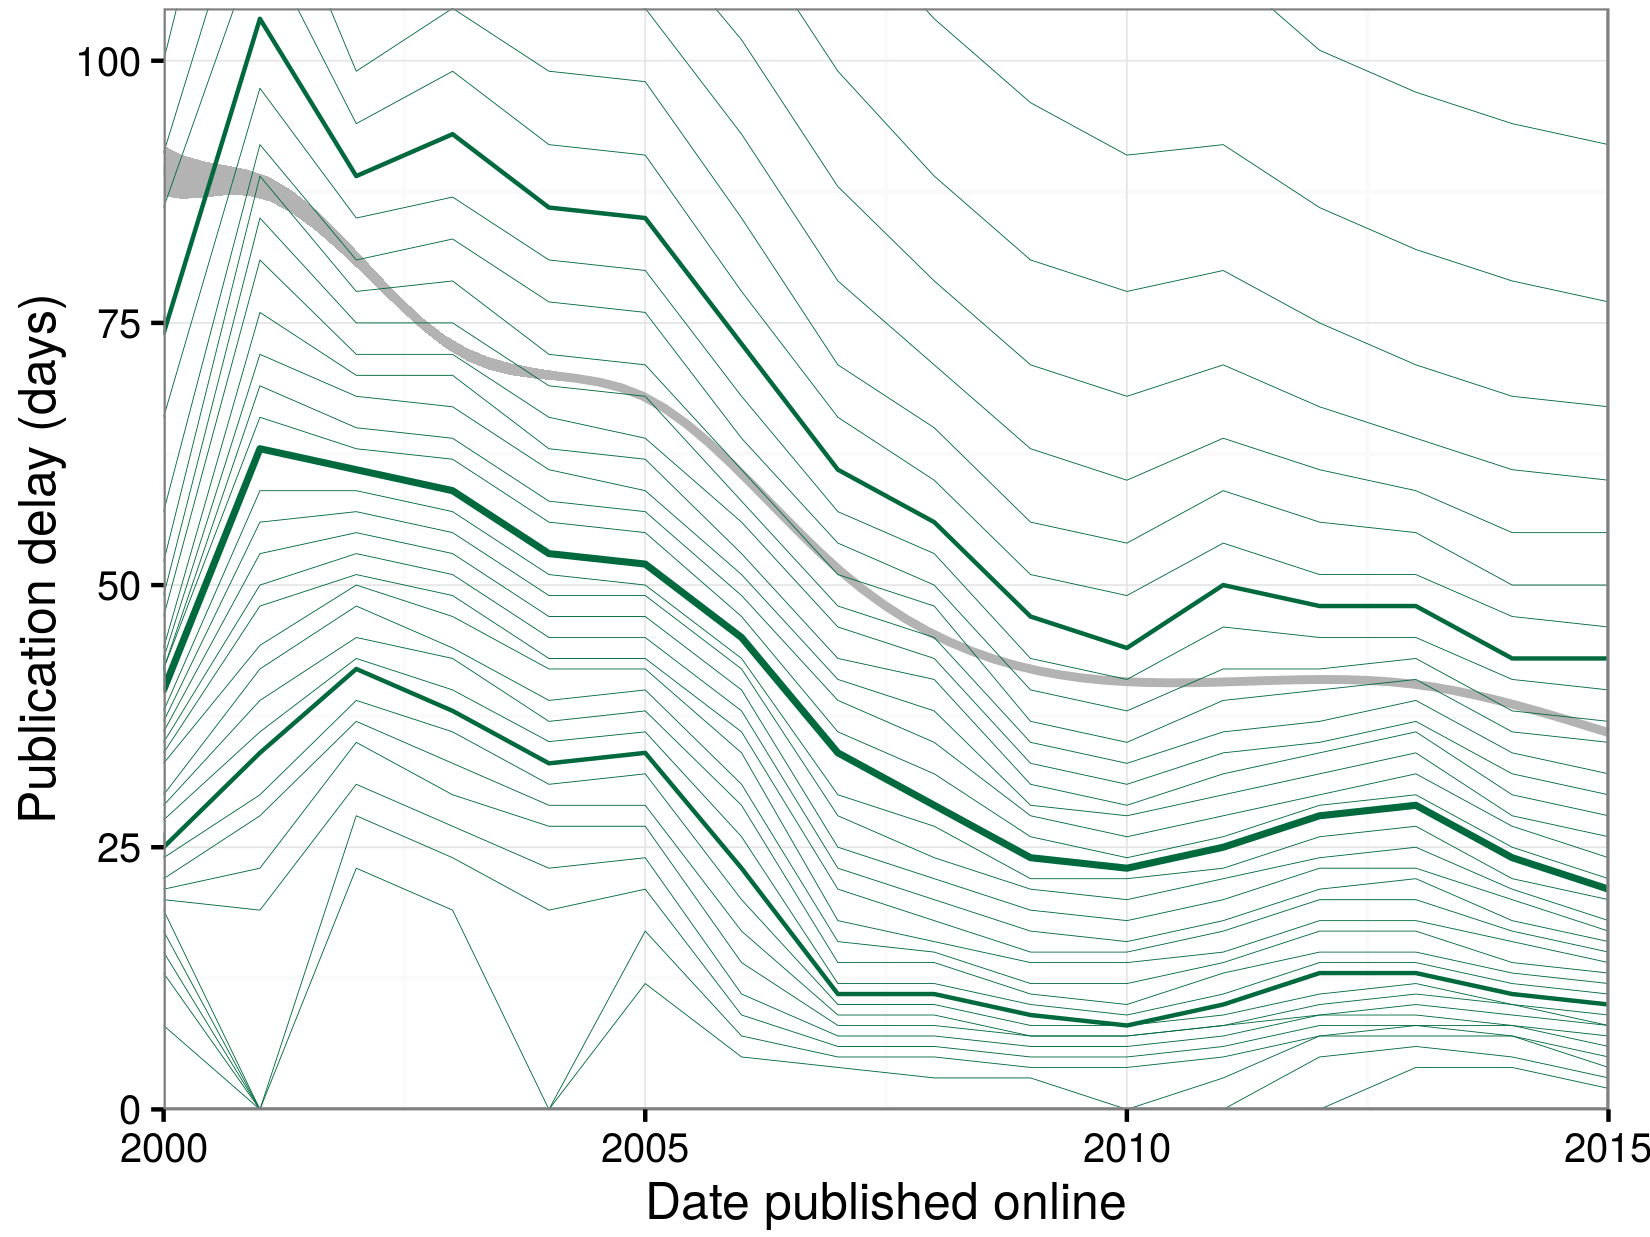 Publication delay versus year published